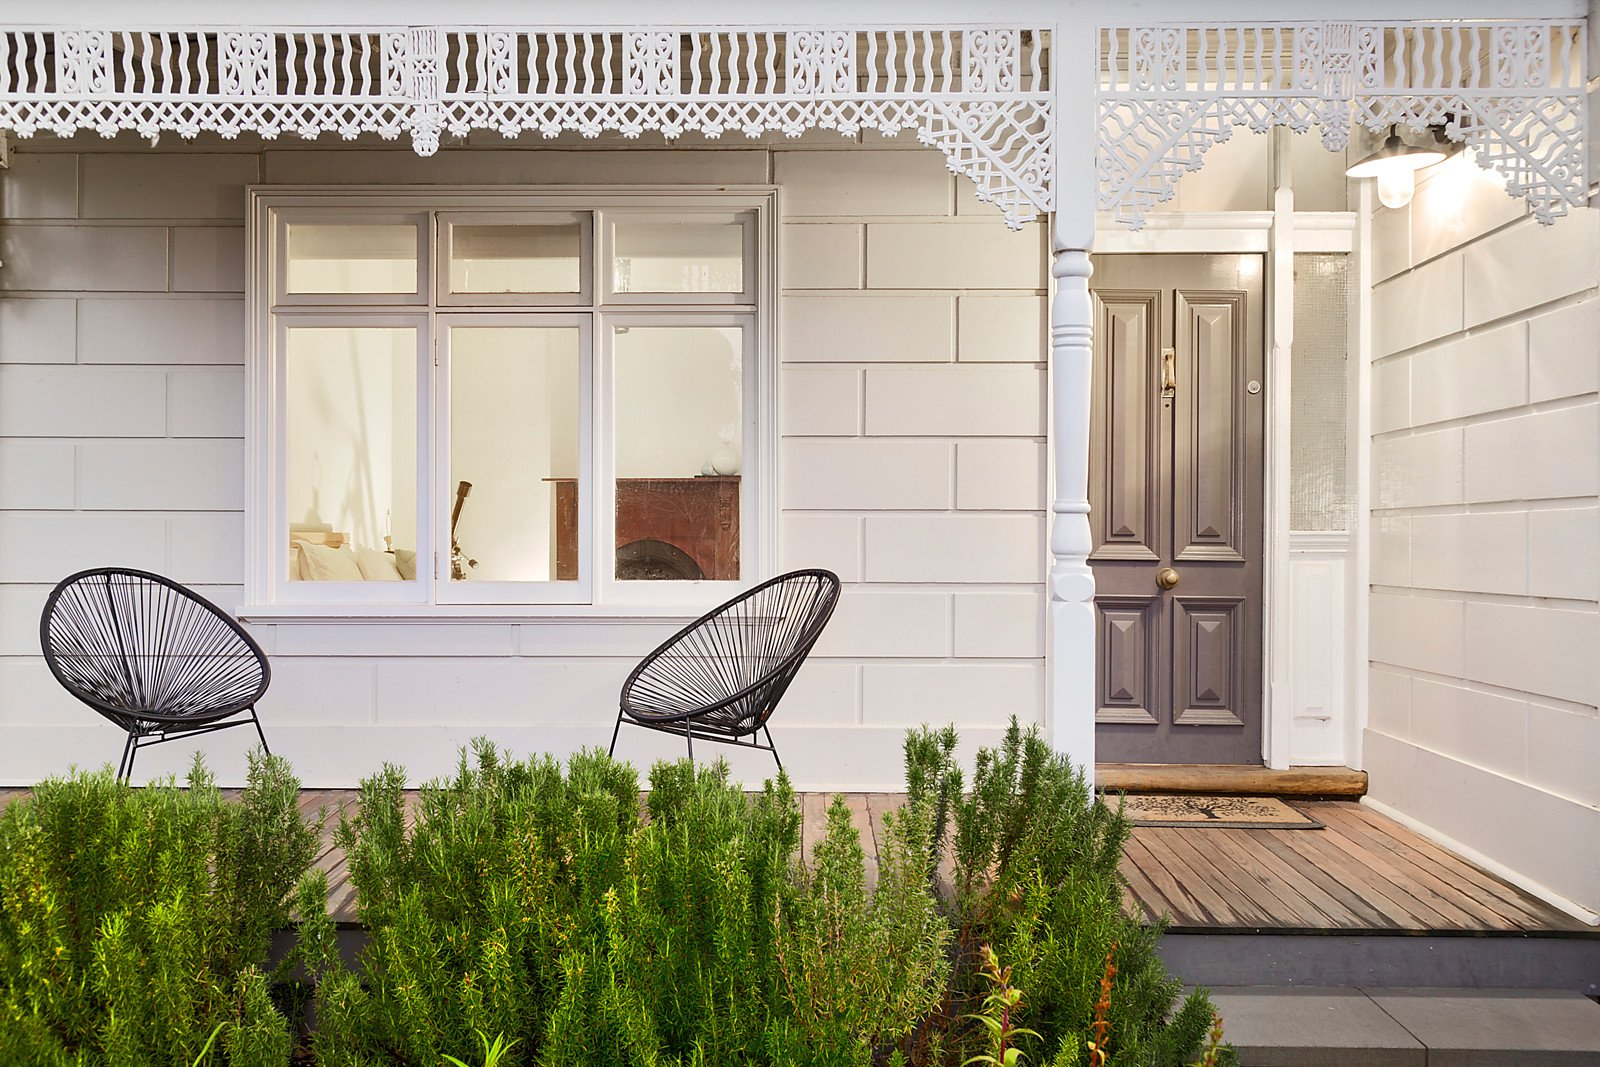 188 Miller Street, Fitzroy North, VIC, 3068 image 13